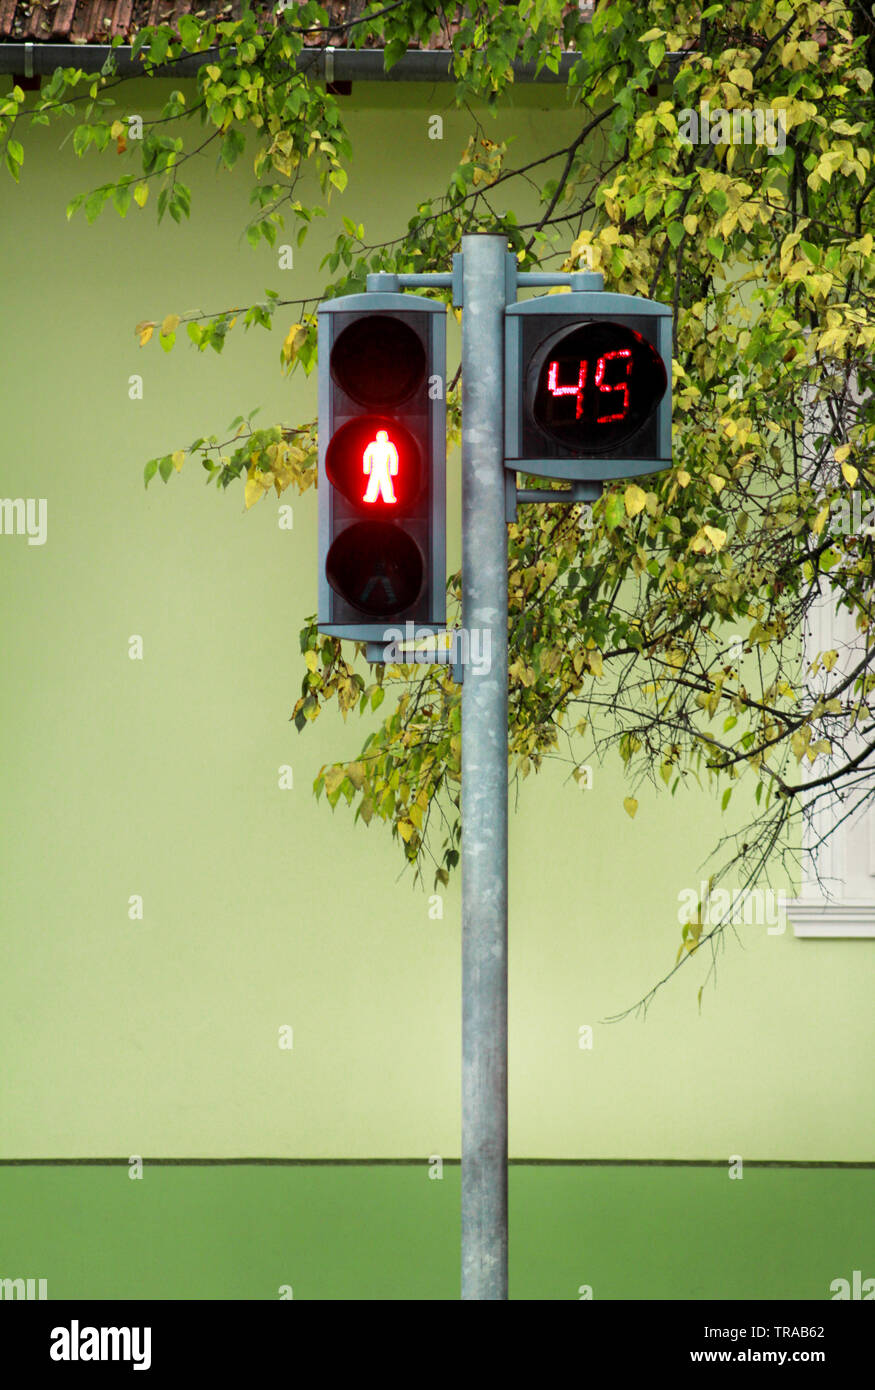 Traffic light on pedestrian crossing. Counter is counting for duration of red light. Waiting to start green light and safe crossing over pedestrian. - Stock Image